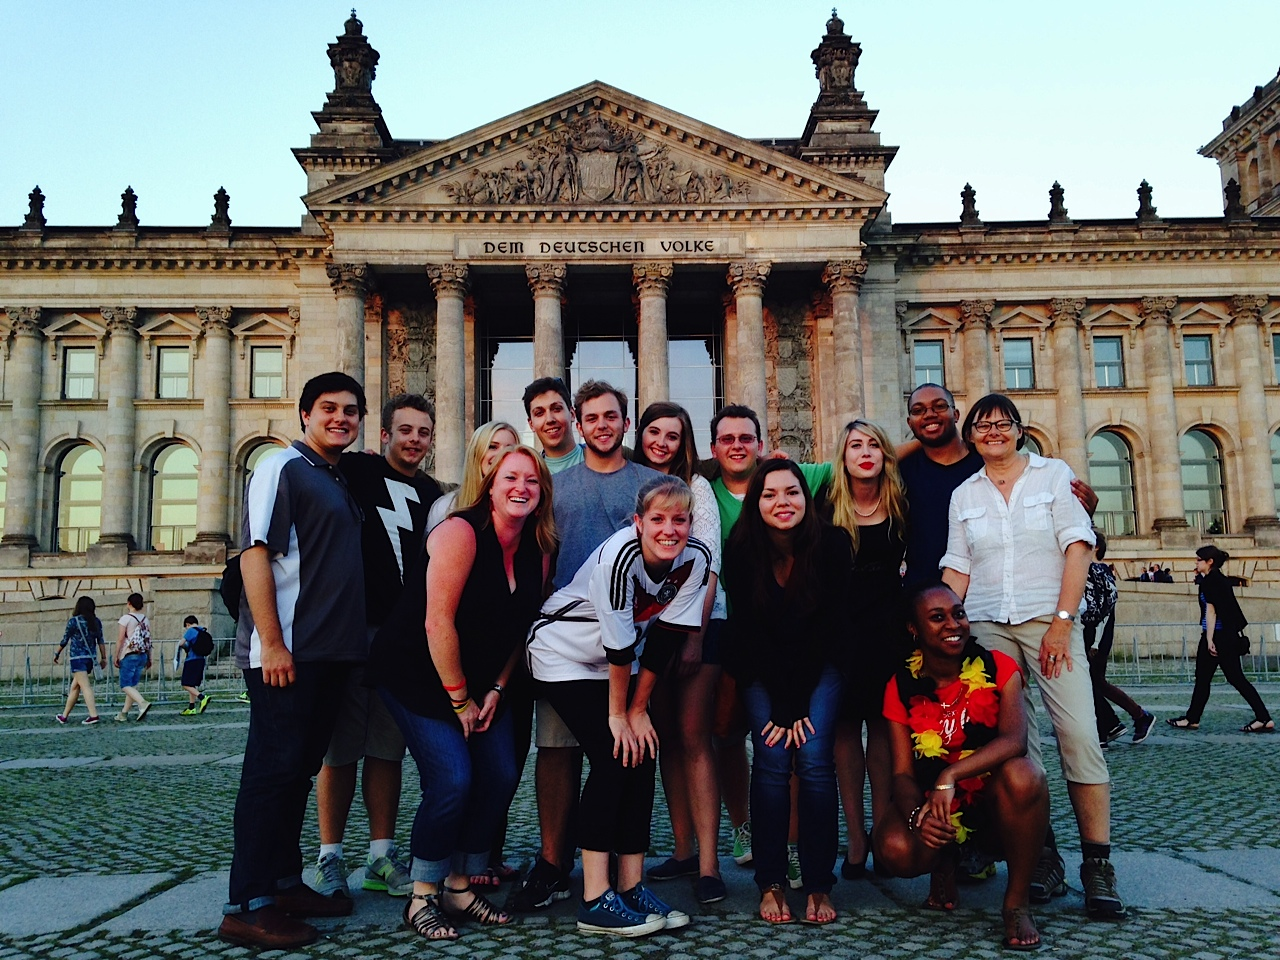 german colleges The clep german language exam measures the knowledge and skills typically learned in the first and second year of college study.